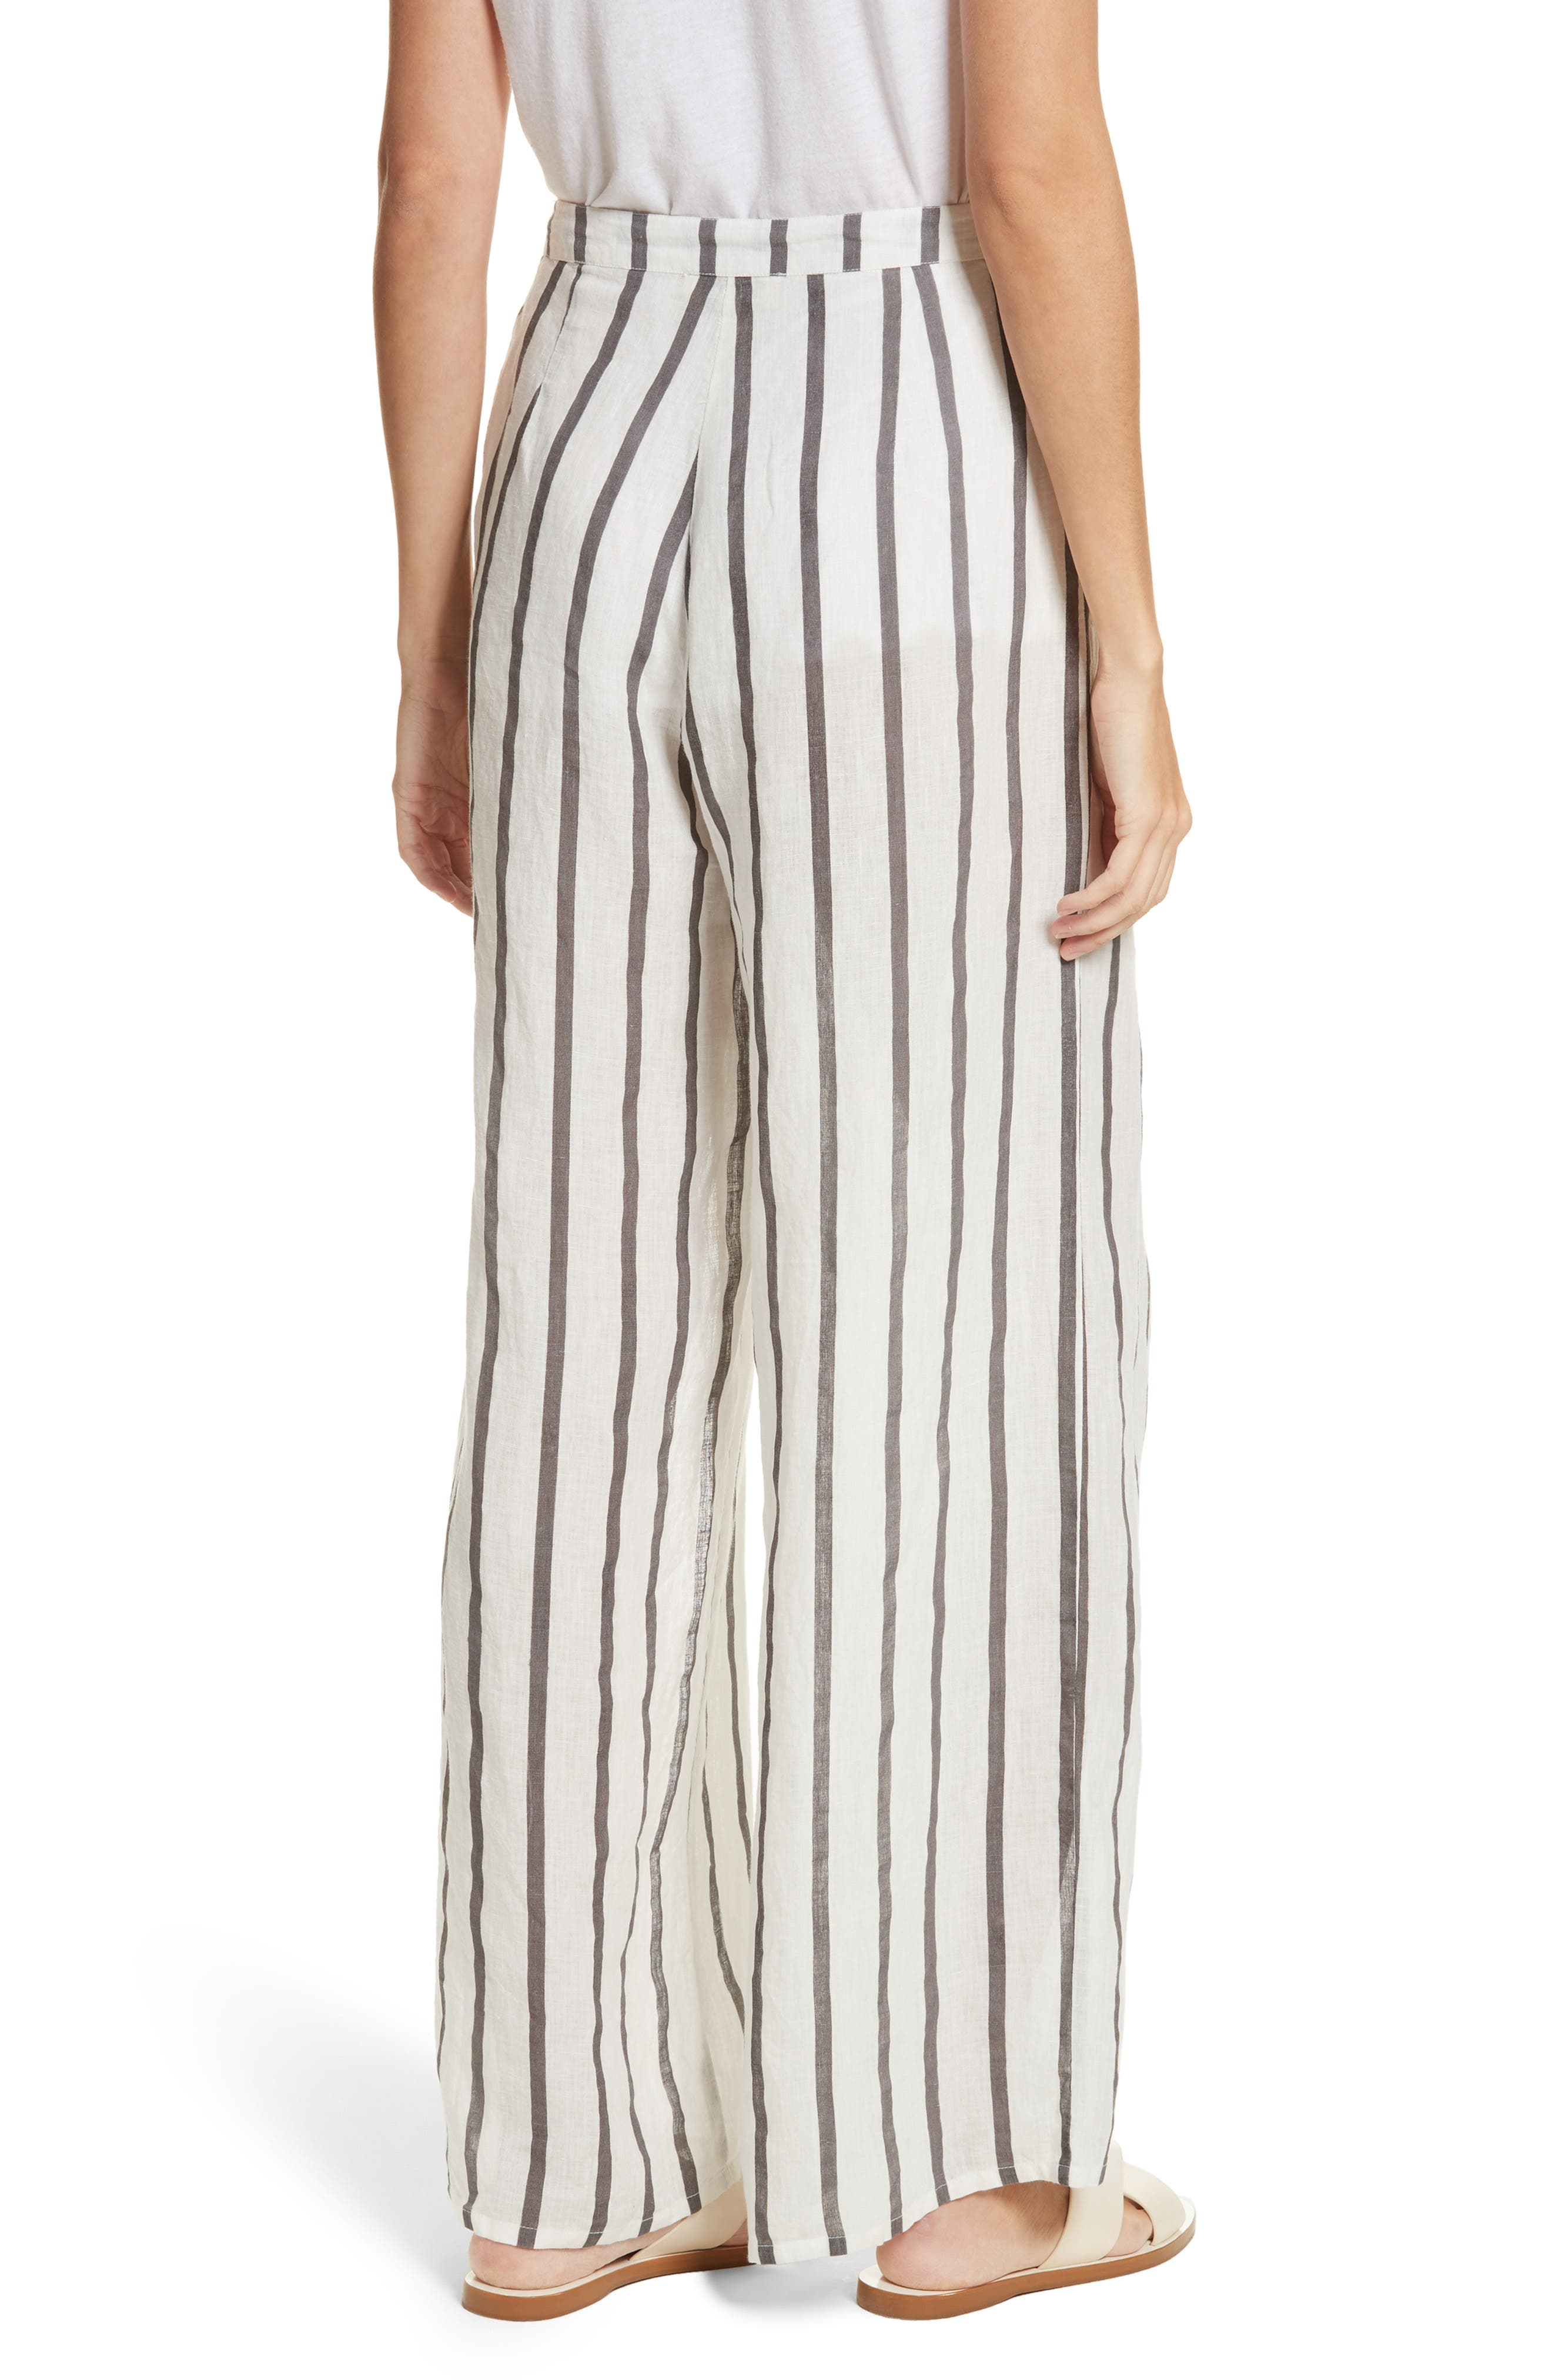 Andrea Embroidered Wide Leg Pants,                             Alternate thumbnail 2, color,                             094